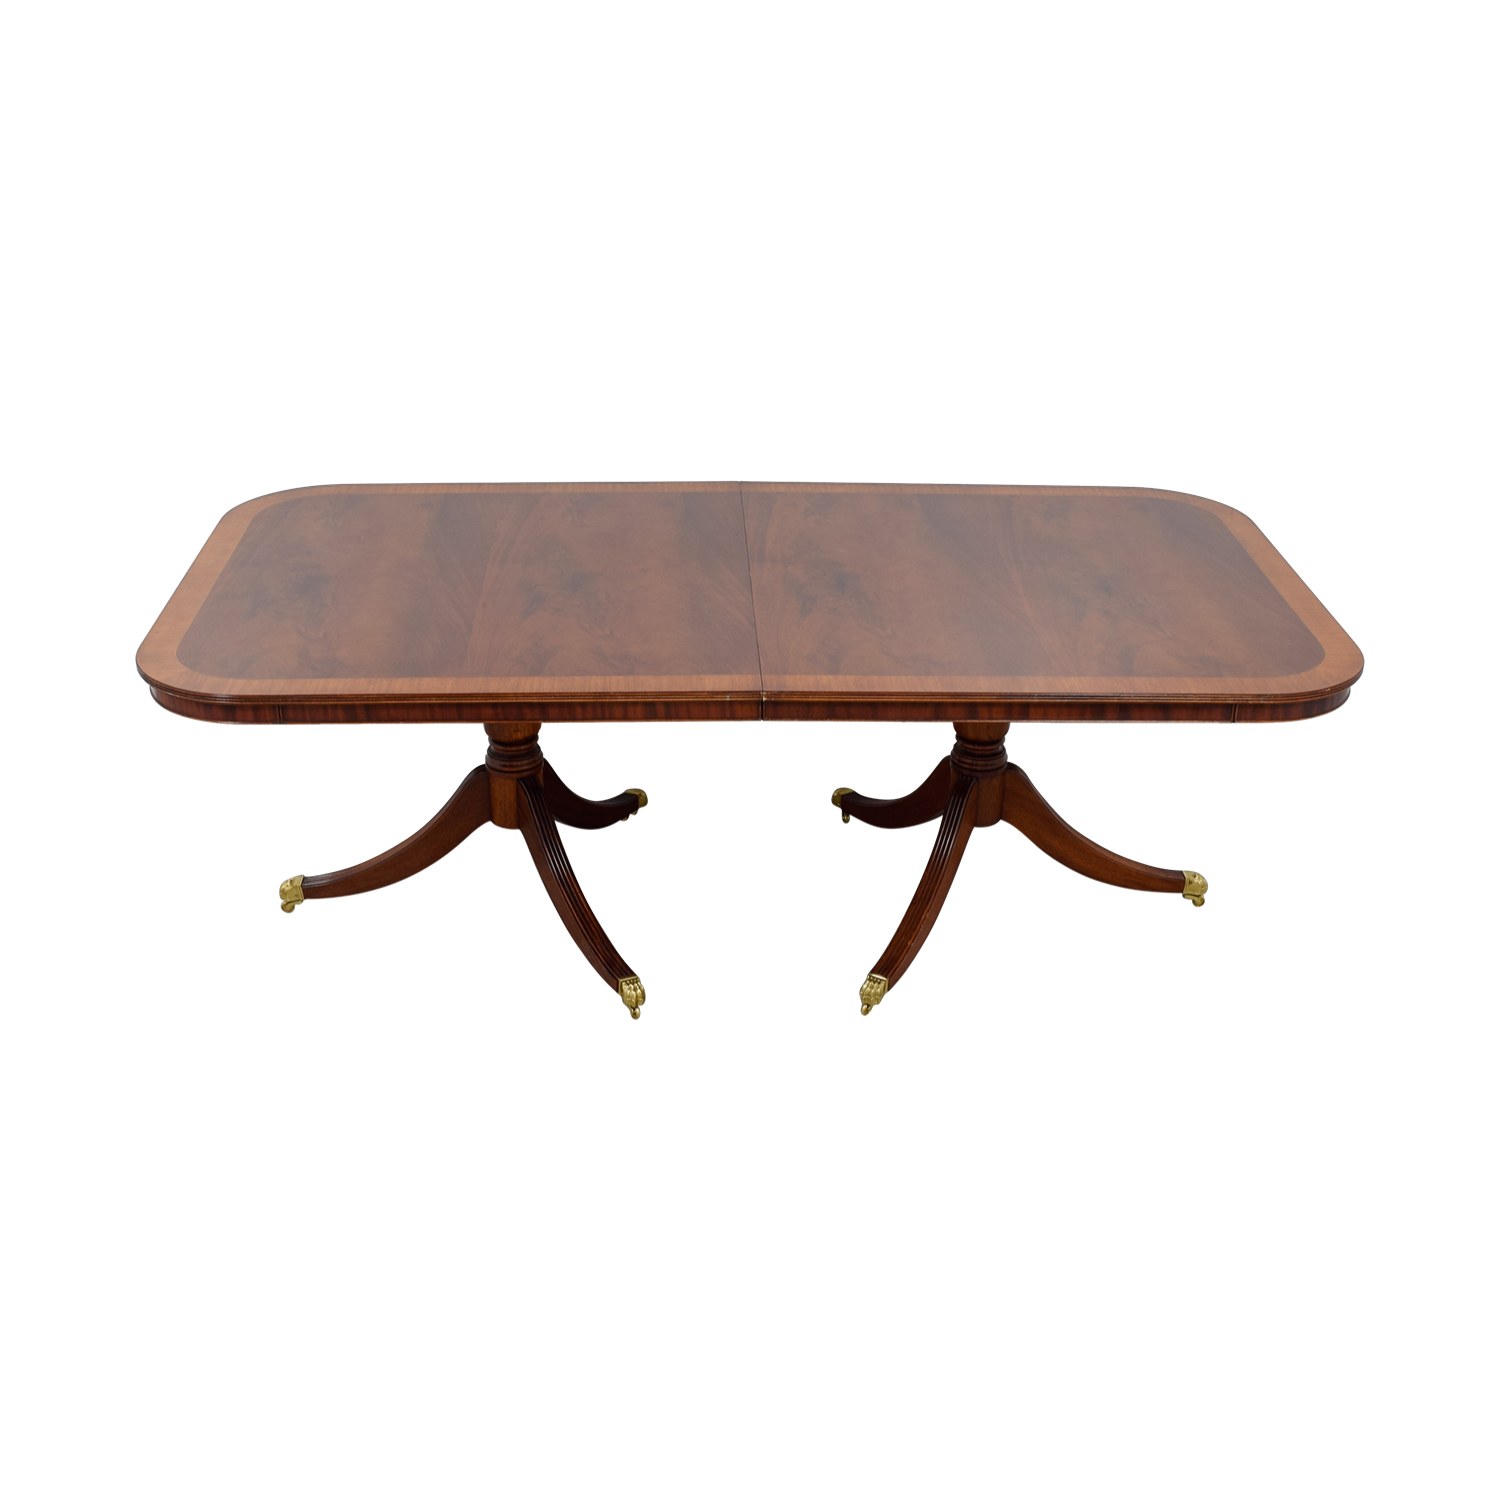 Polished Wood Dining Table with Gold Feet / Tables